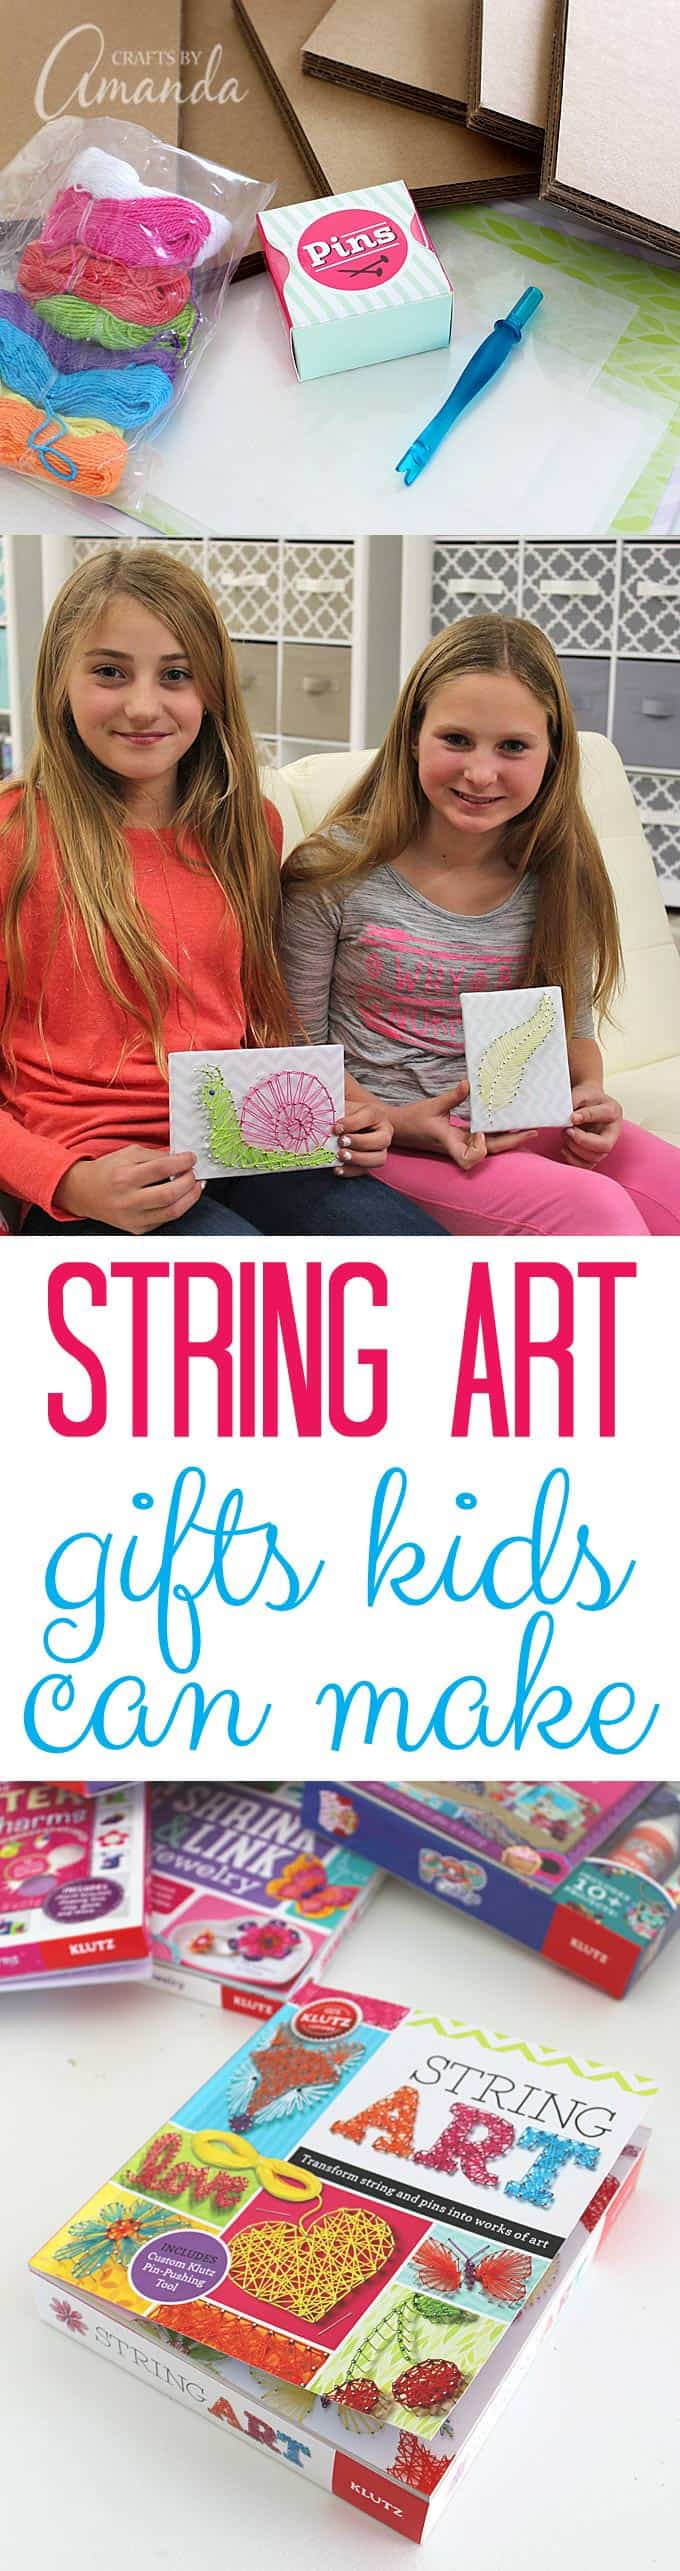 String Art: Gifts Kids Can Make - use these awesome activity kits from Klutz Books to create oodles of fun gifts to give this Christmas! #KLUTZhandmade #ad